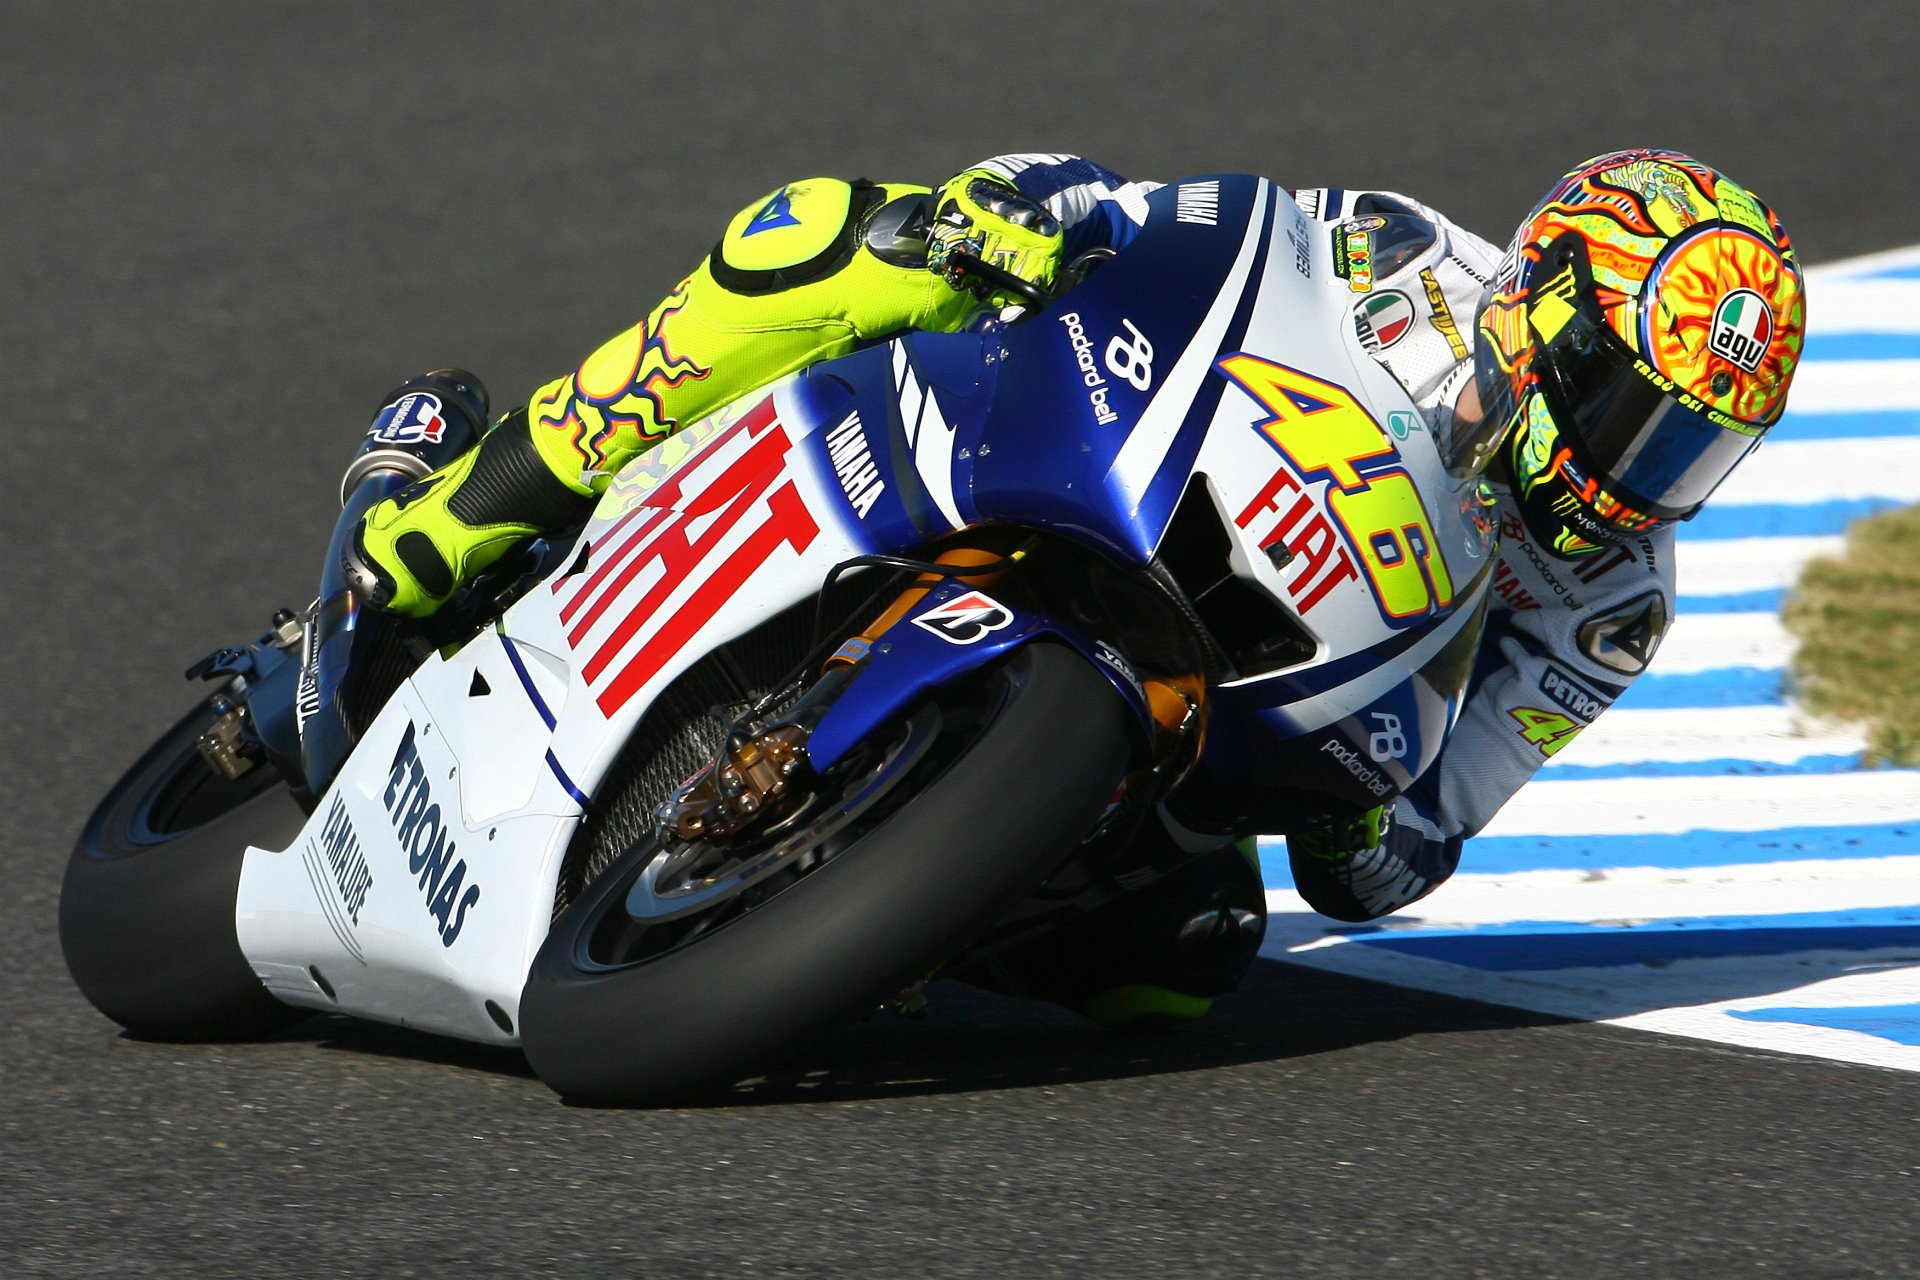 Wallpaper Valentino Rossi 35 Wallpapers Adorable Wallpapers